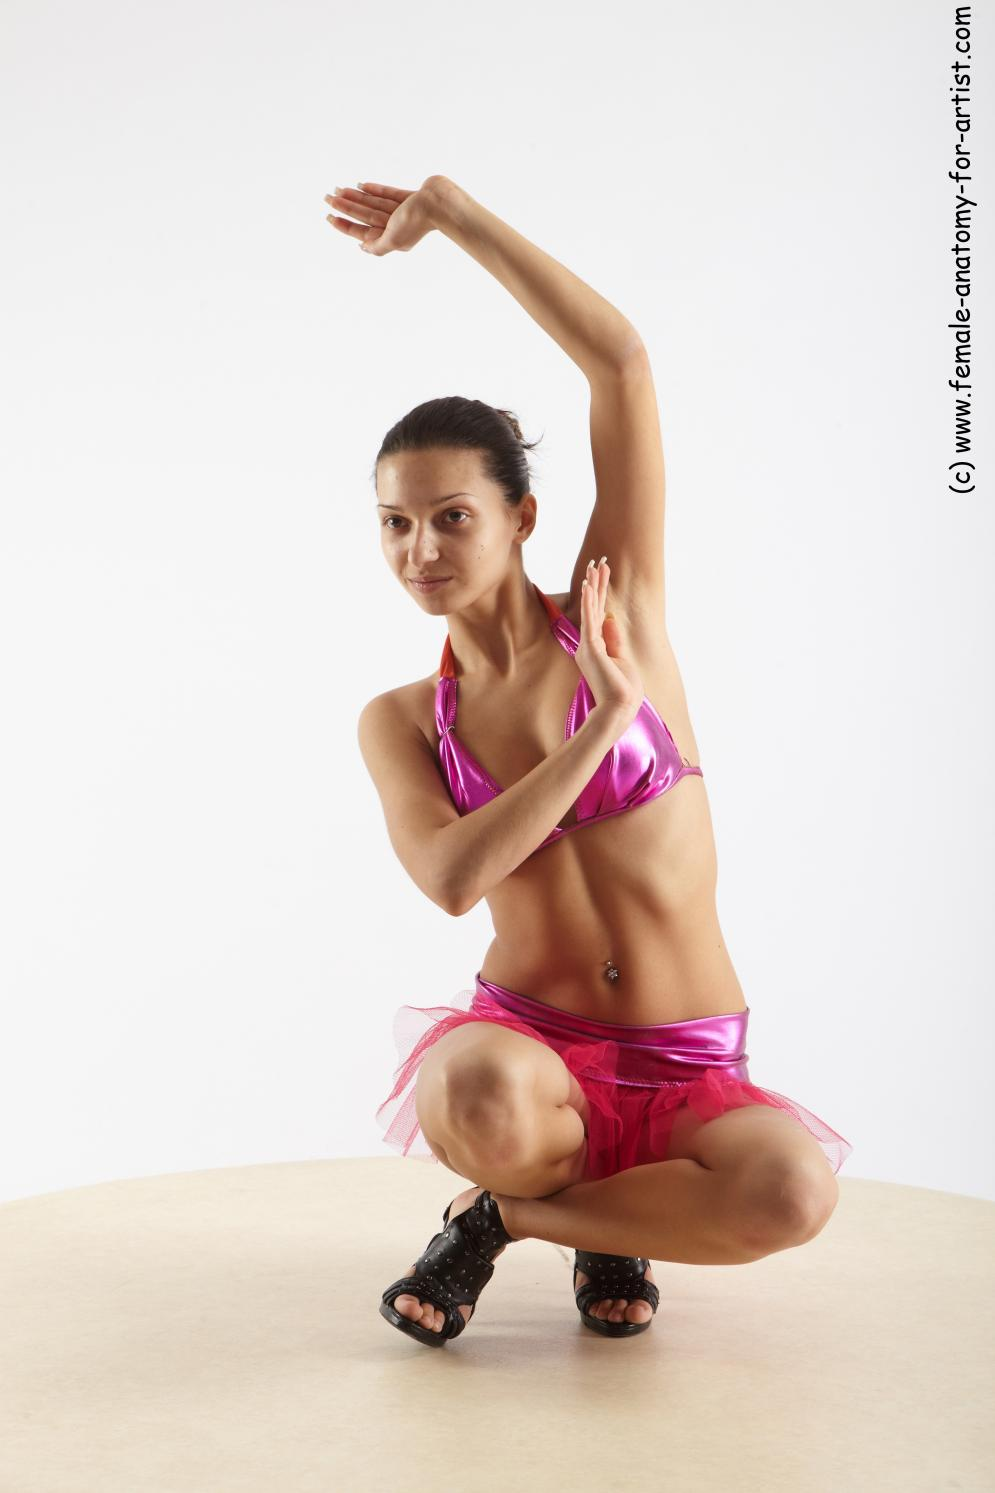 Image from Female dancing poses - hortenzie_09.jpg